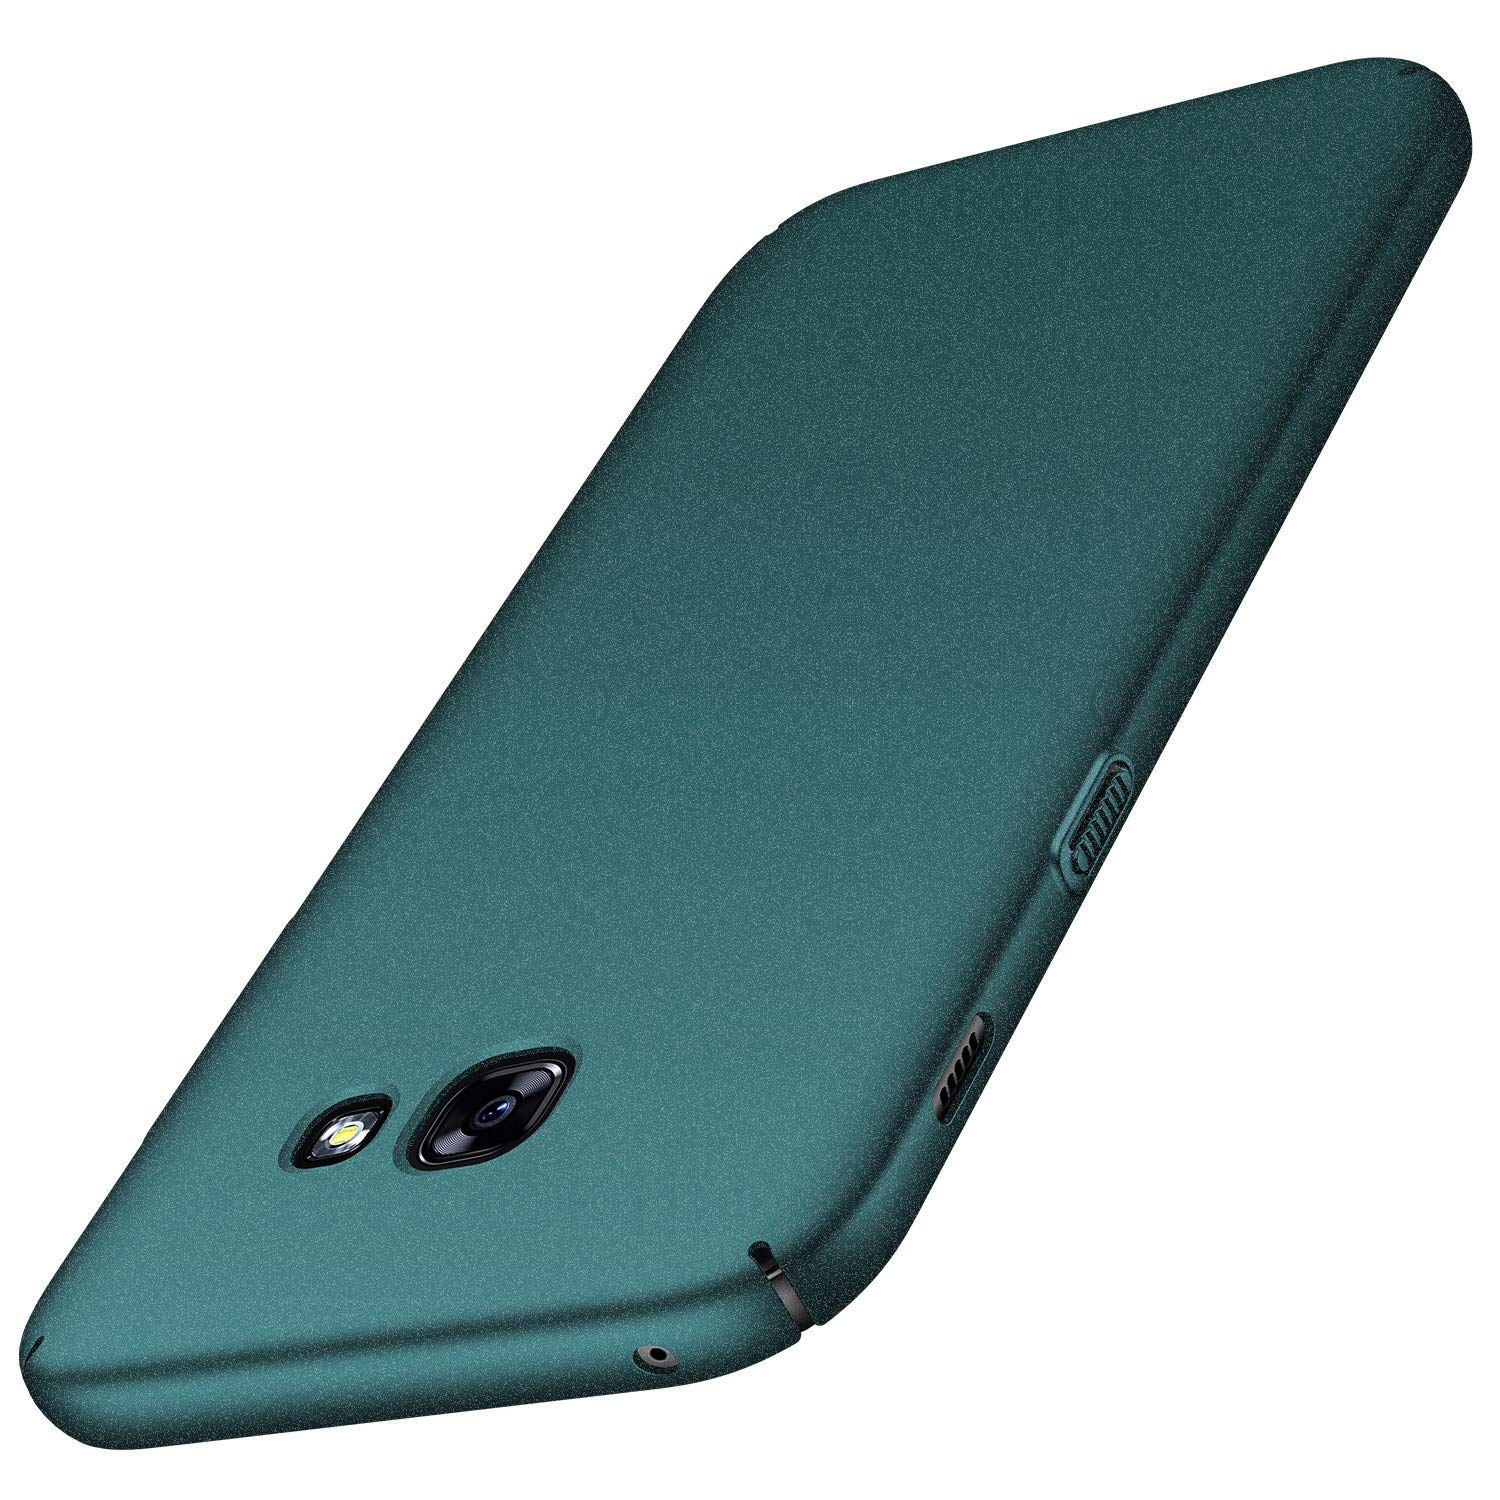 Amazon.com: Avalri Samsung Galaxy A3 2017 Case, Ultra Thin ...